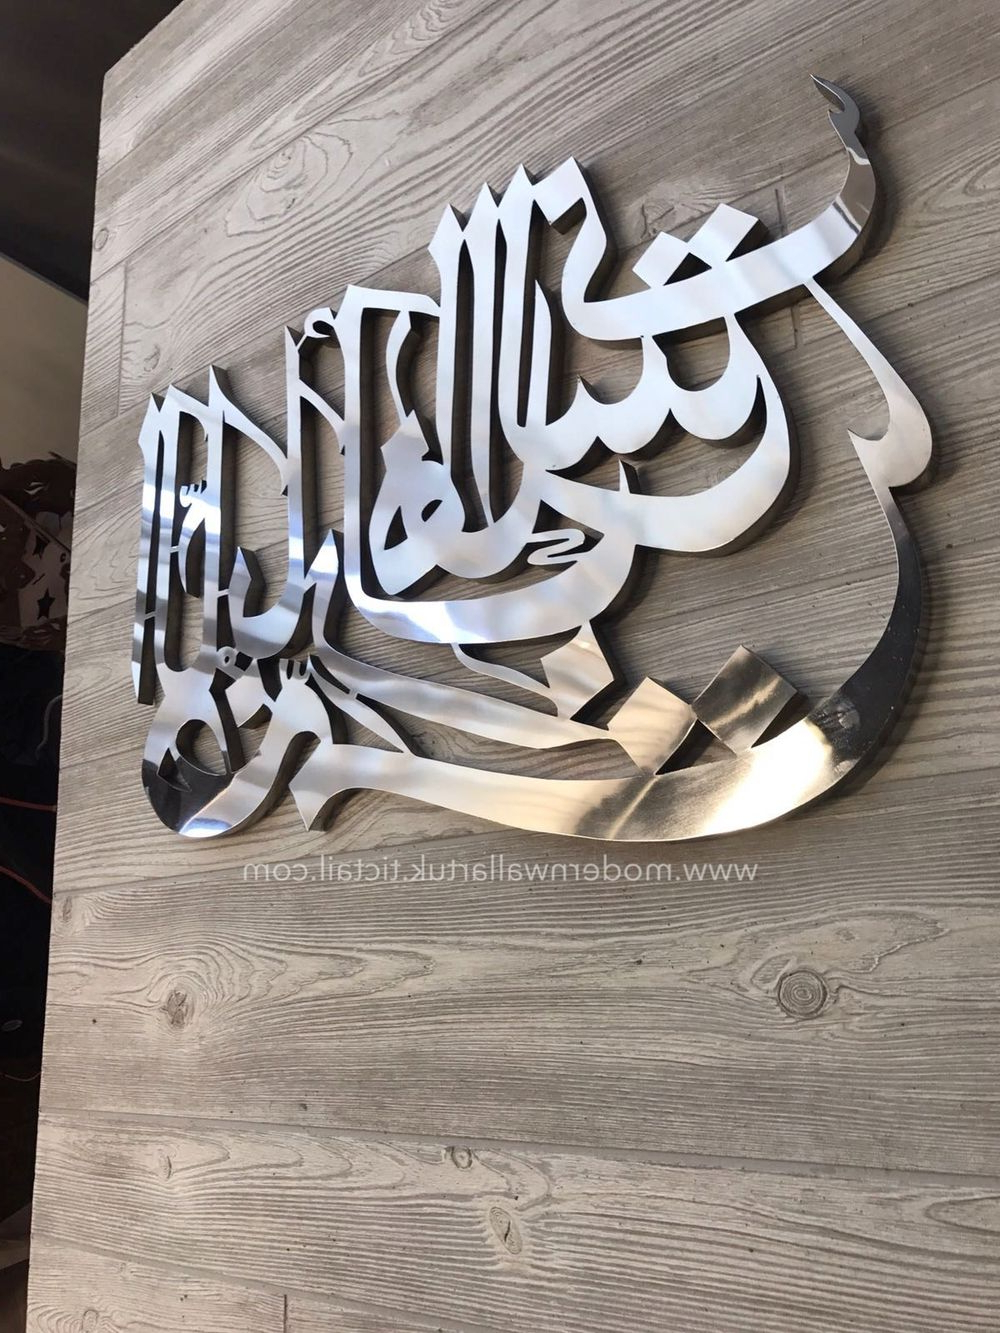 Allah Bless This Home' Wall Art Stainless Steel In  (View 2 of 20)